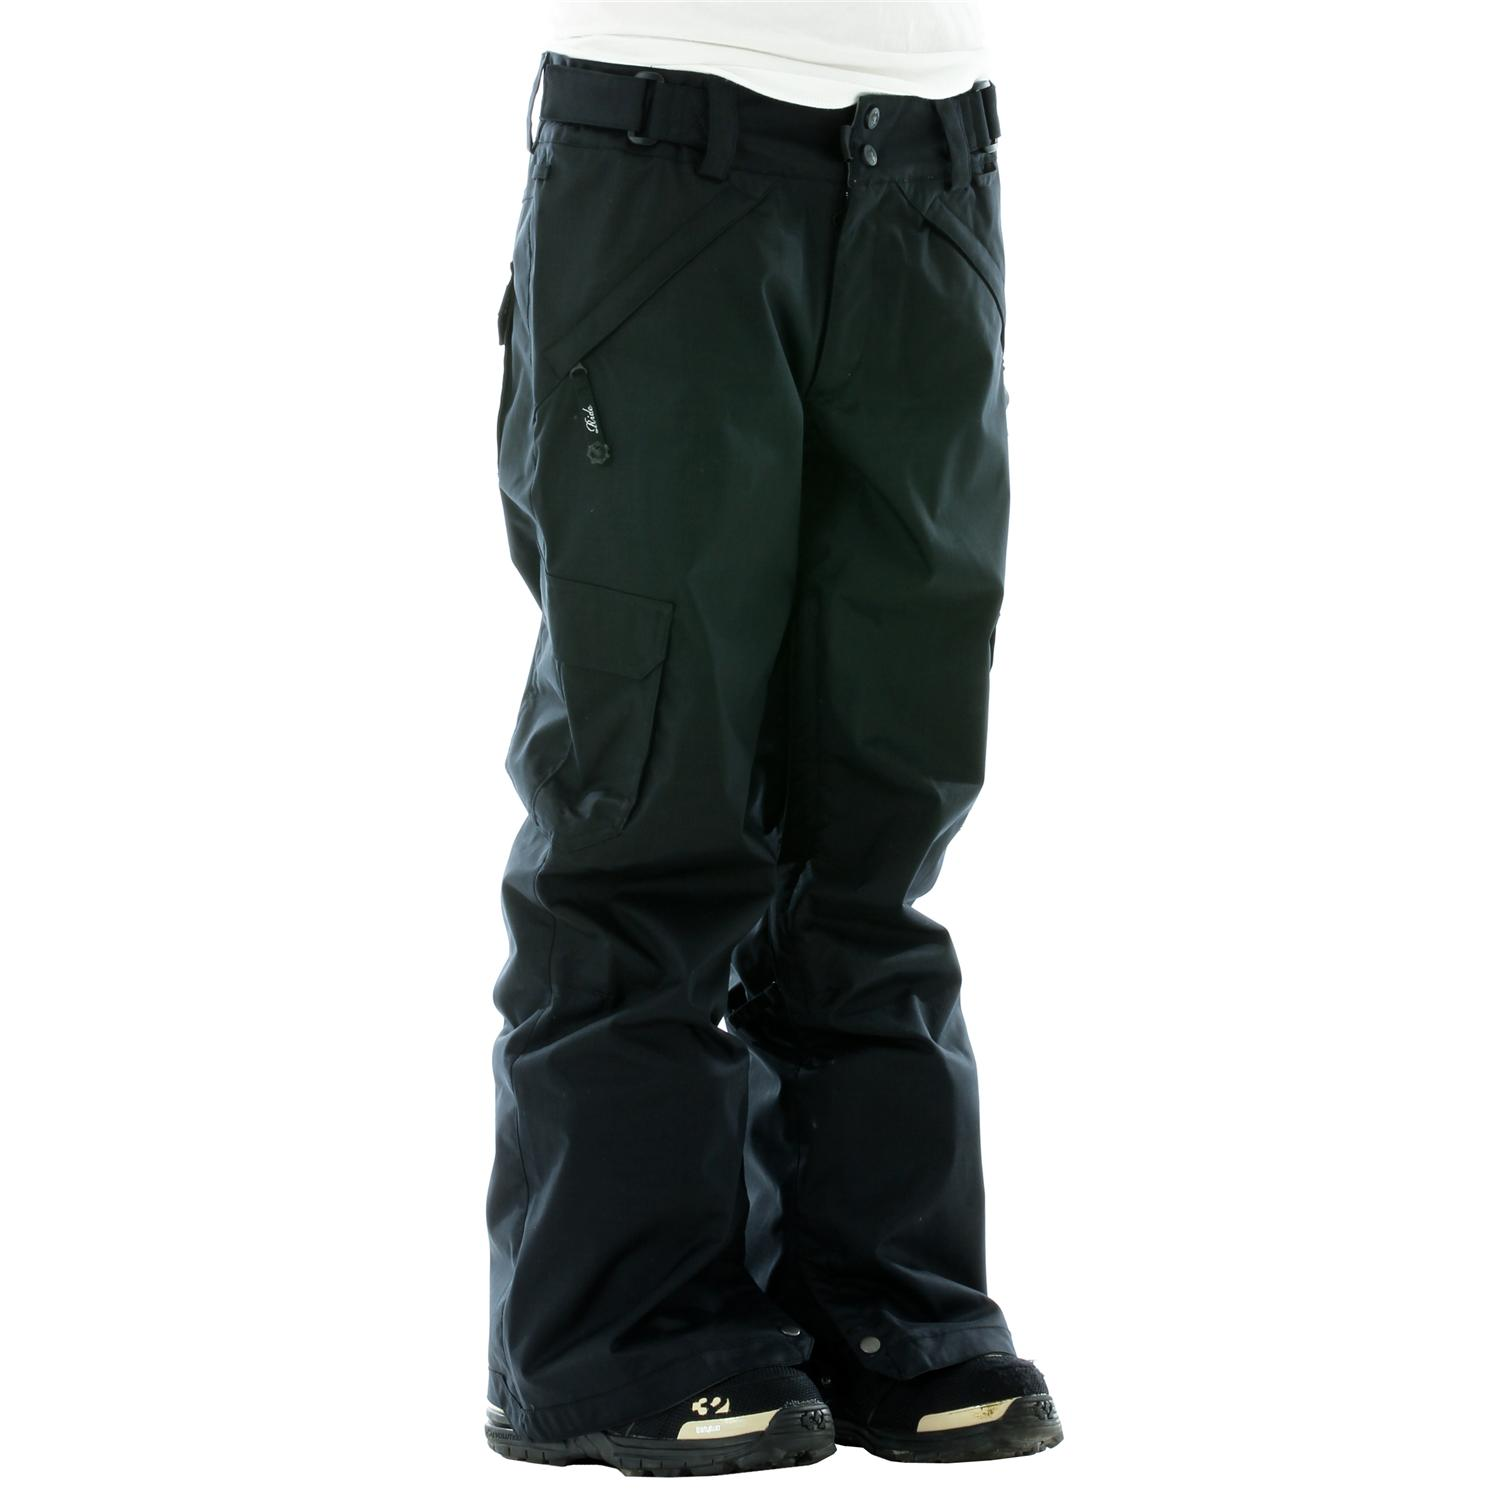 Baggy Cargo Pants For Women Cargo pants - women sBaggy Cargo Pants For Women